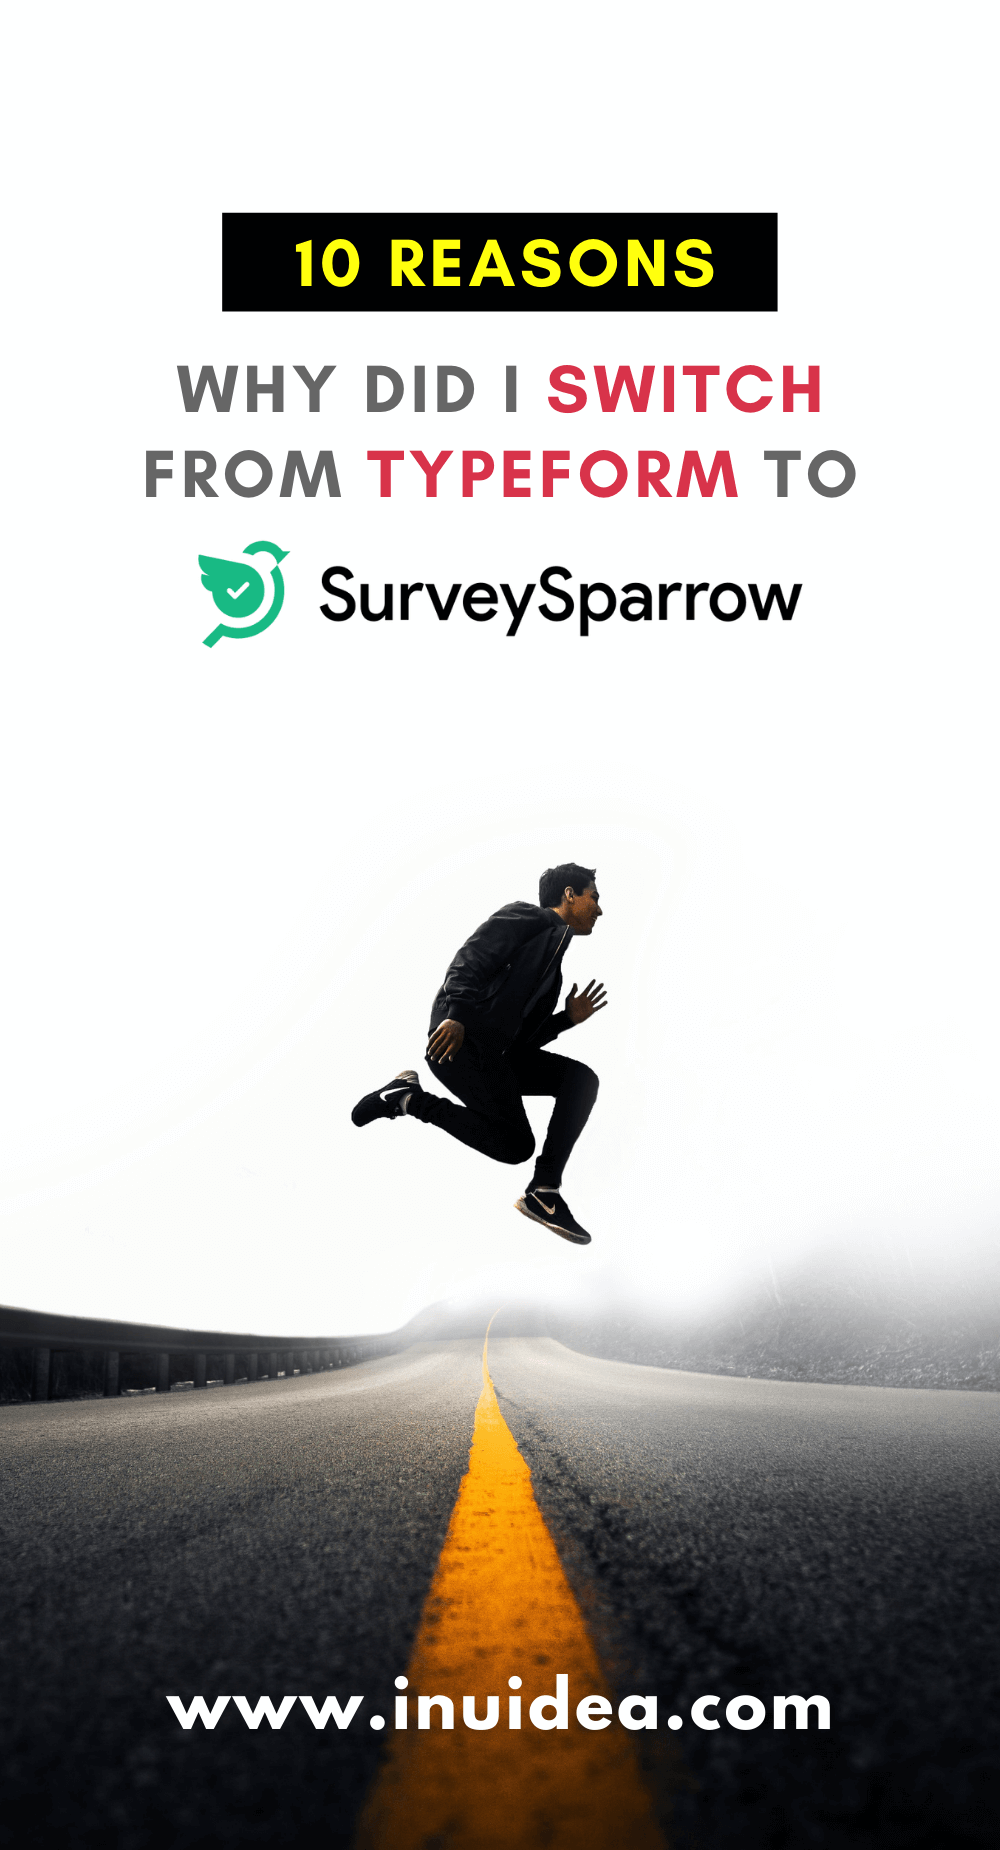 Why-did-I-switch-from-Typeform-to-SurveySparrow-10-Reasons